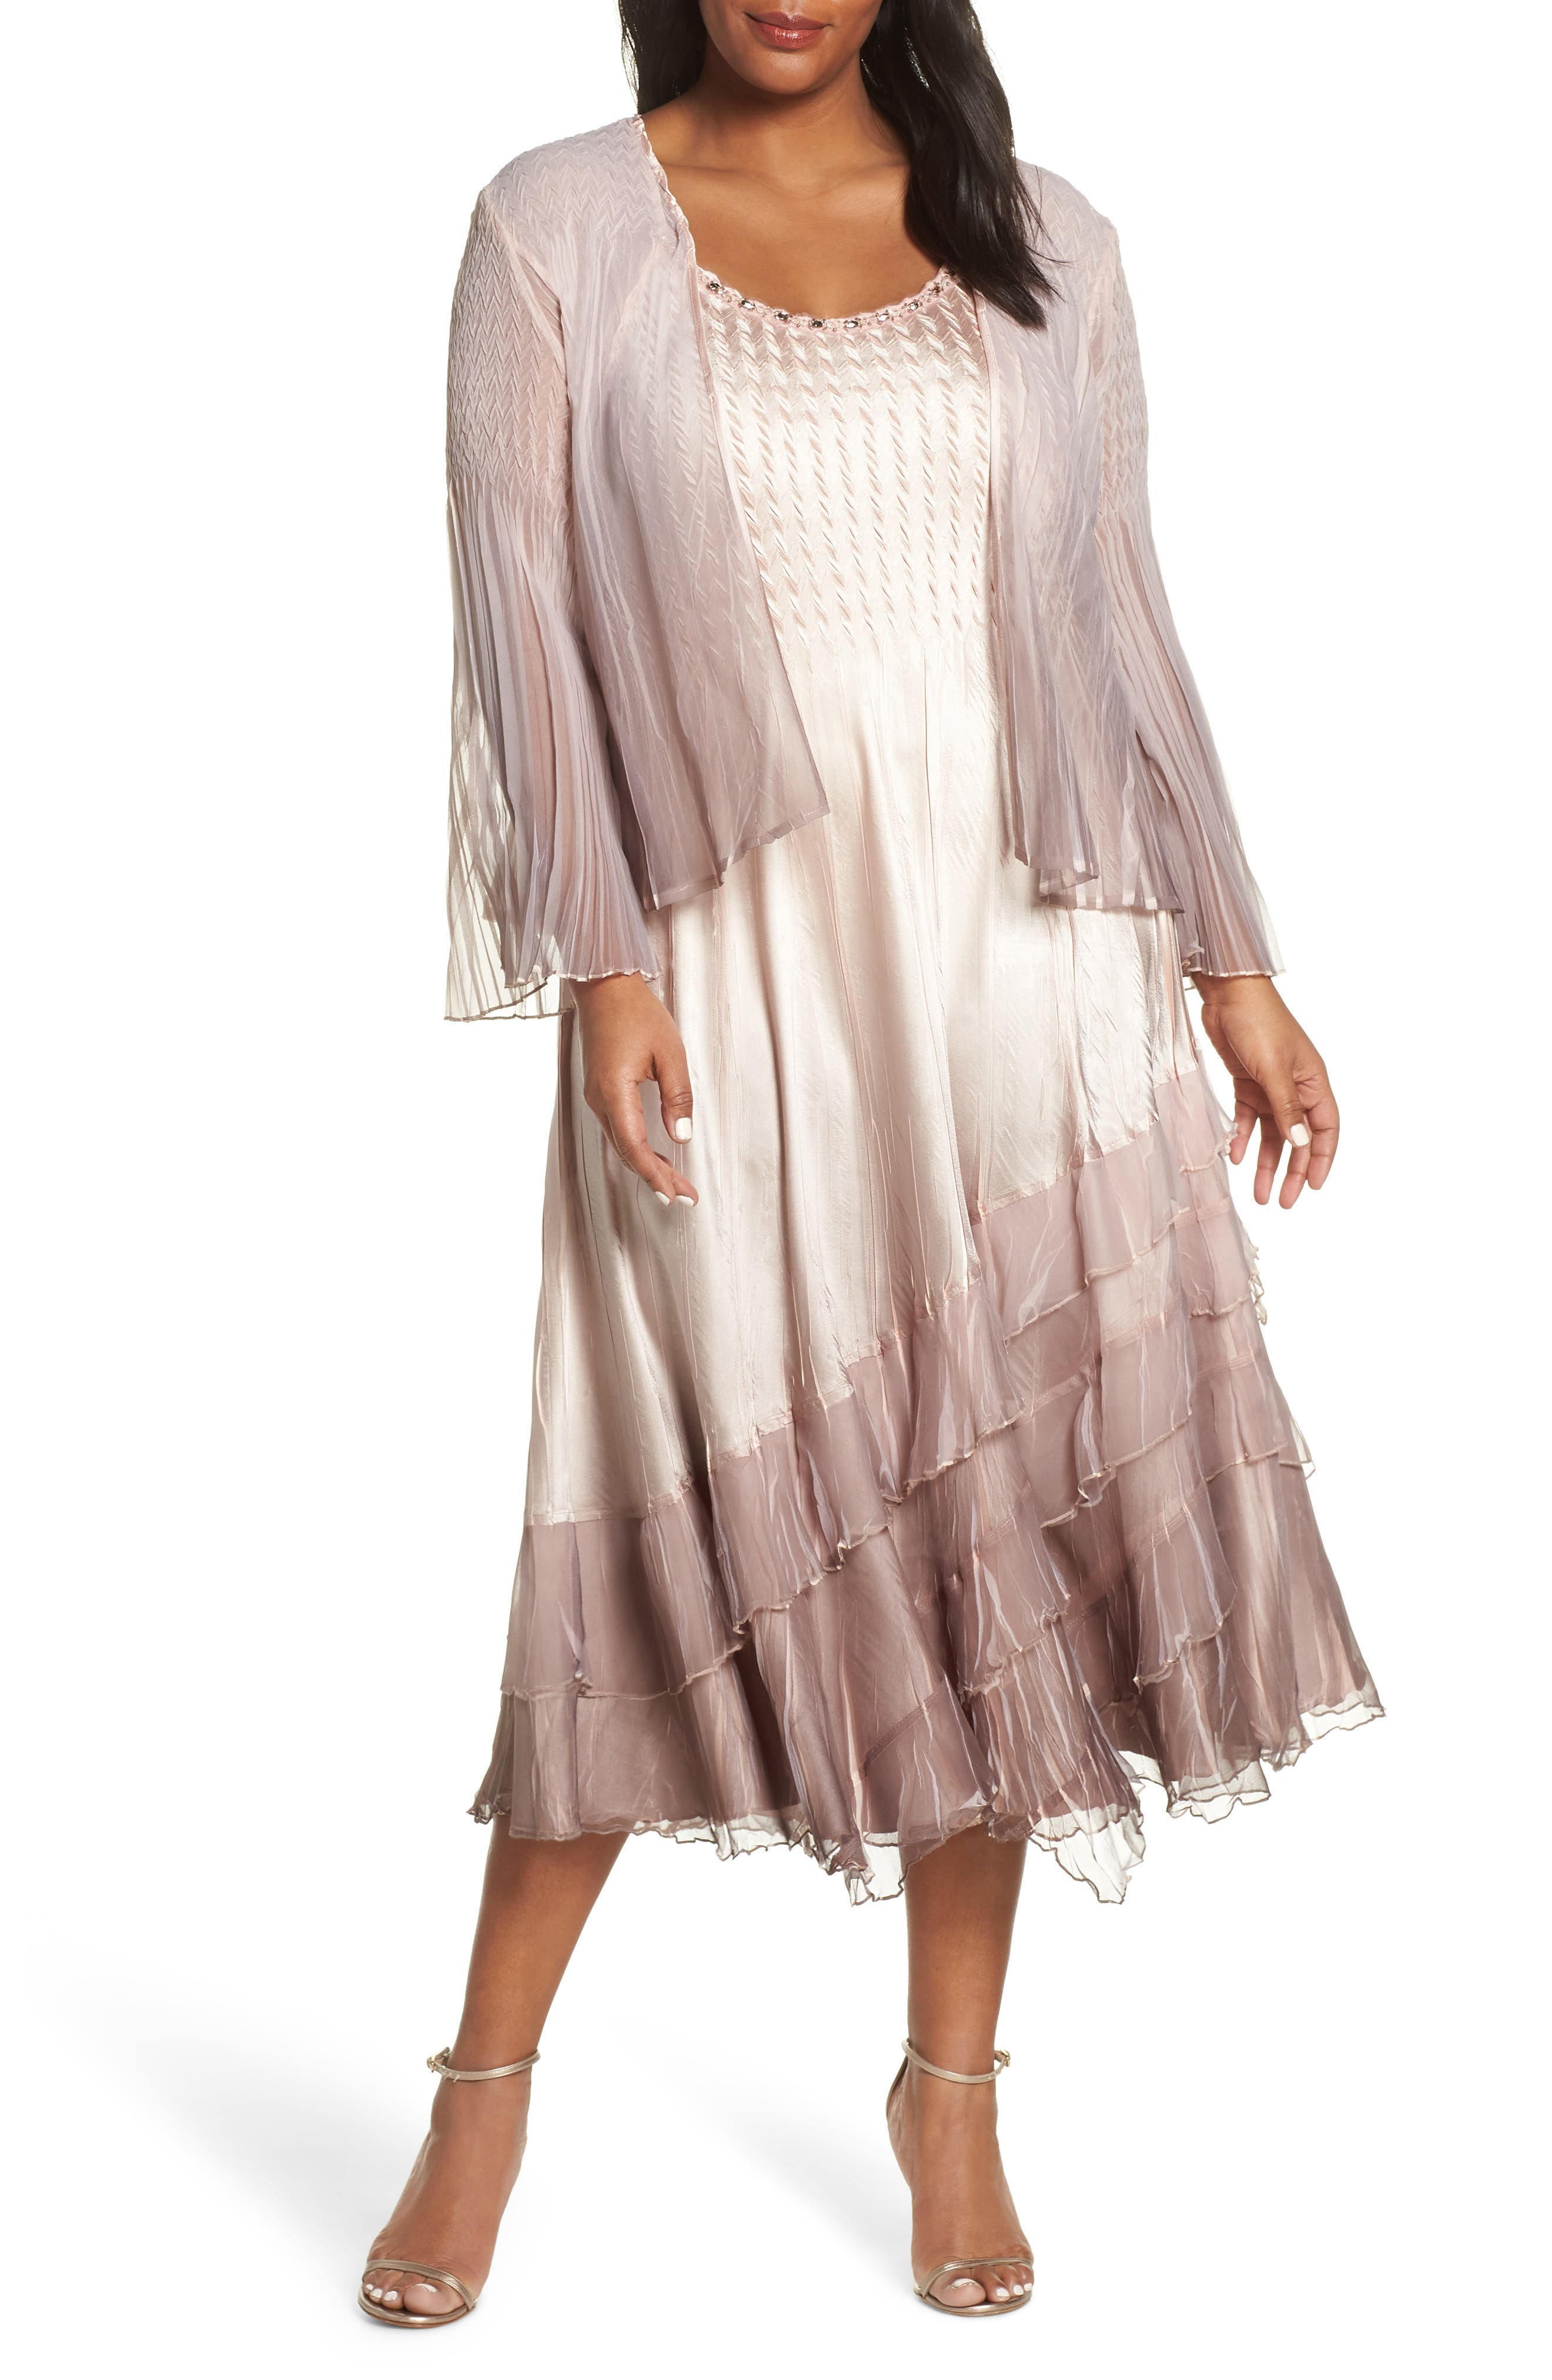 KOMAROV, Tiered Hem Ombré Dress with Jacket, Main thumbnail 1, color, VINTAGE ROSE WITH CAFE OMBRE